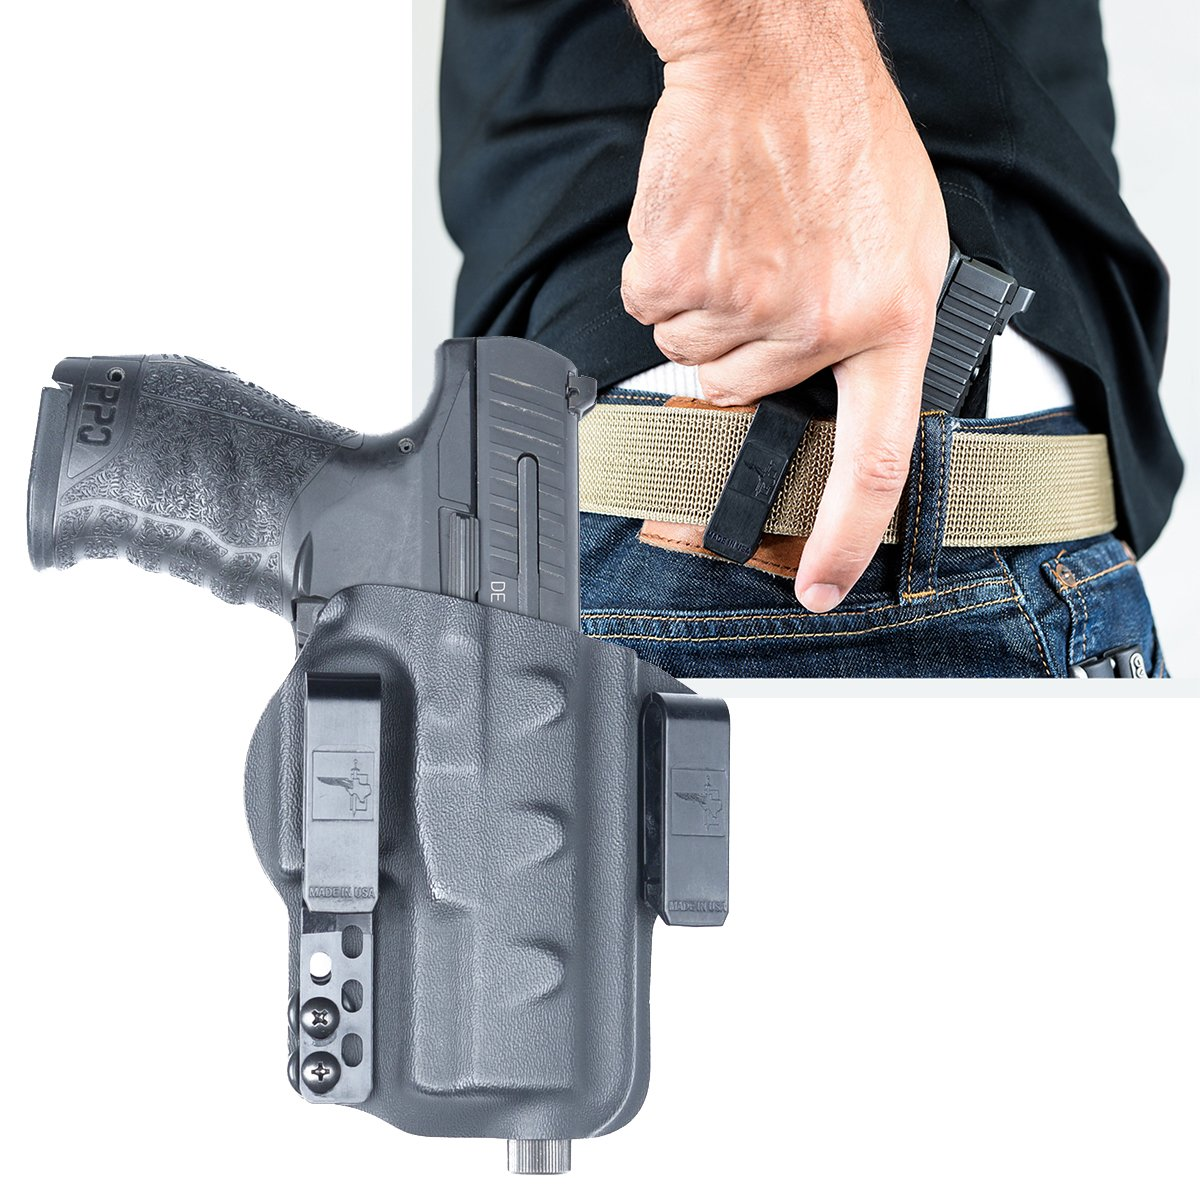 Walther PPQ M2 9mm IWB Kydex Gun Holster + Free Mag Pouch